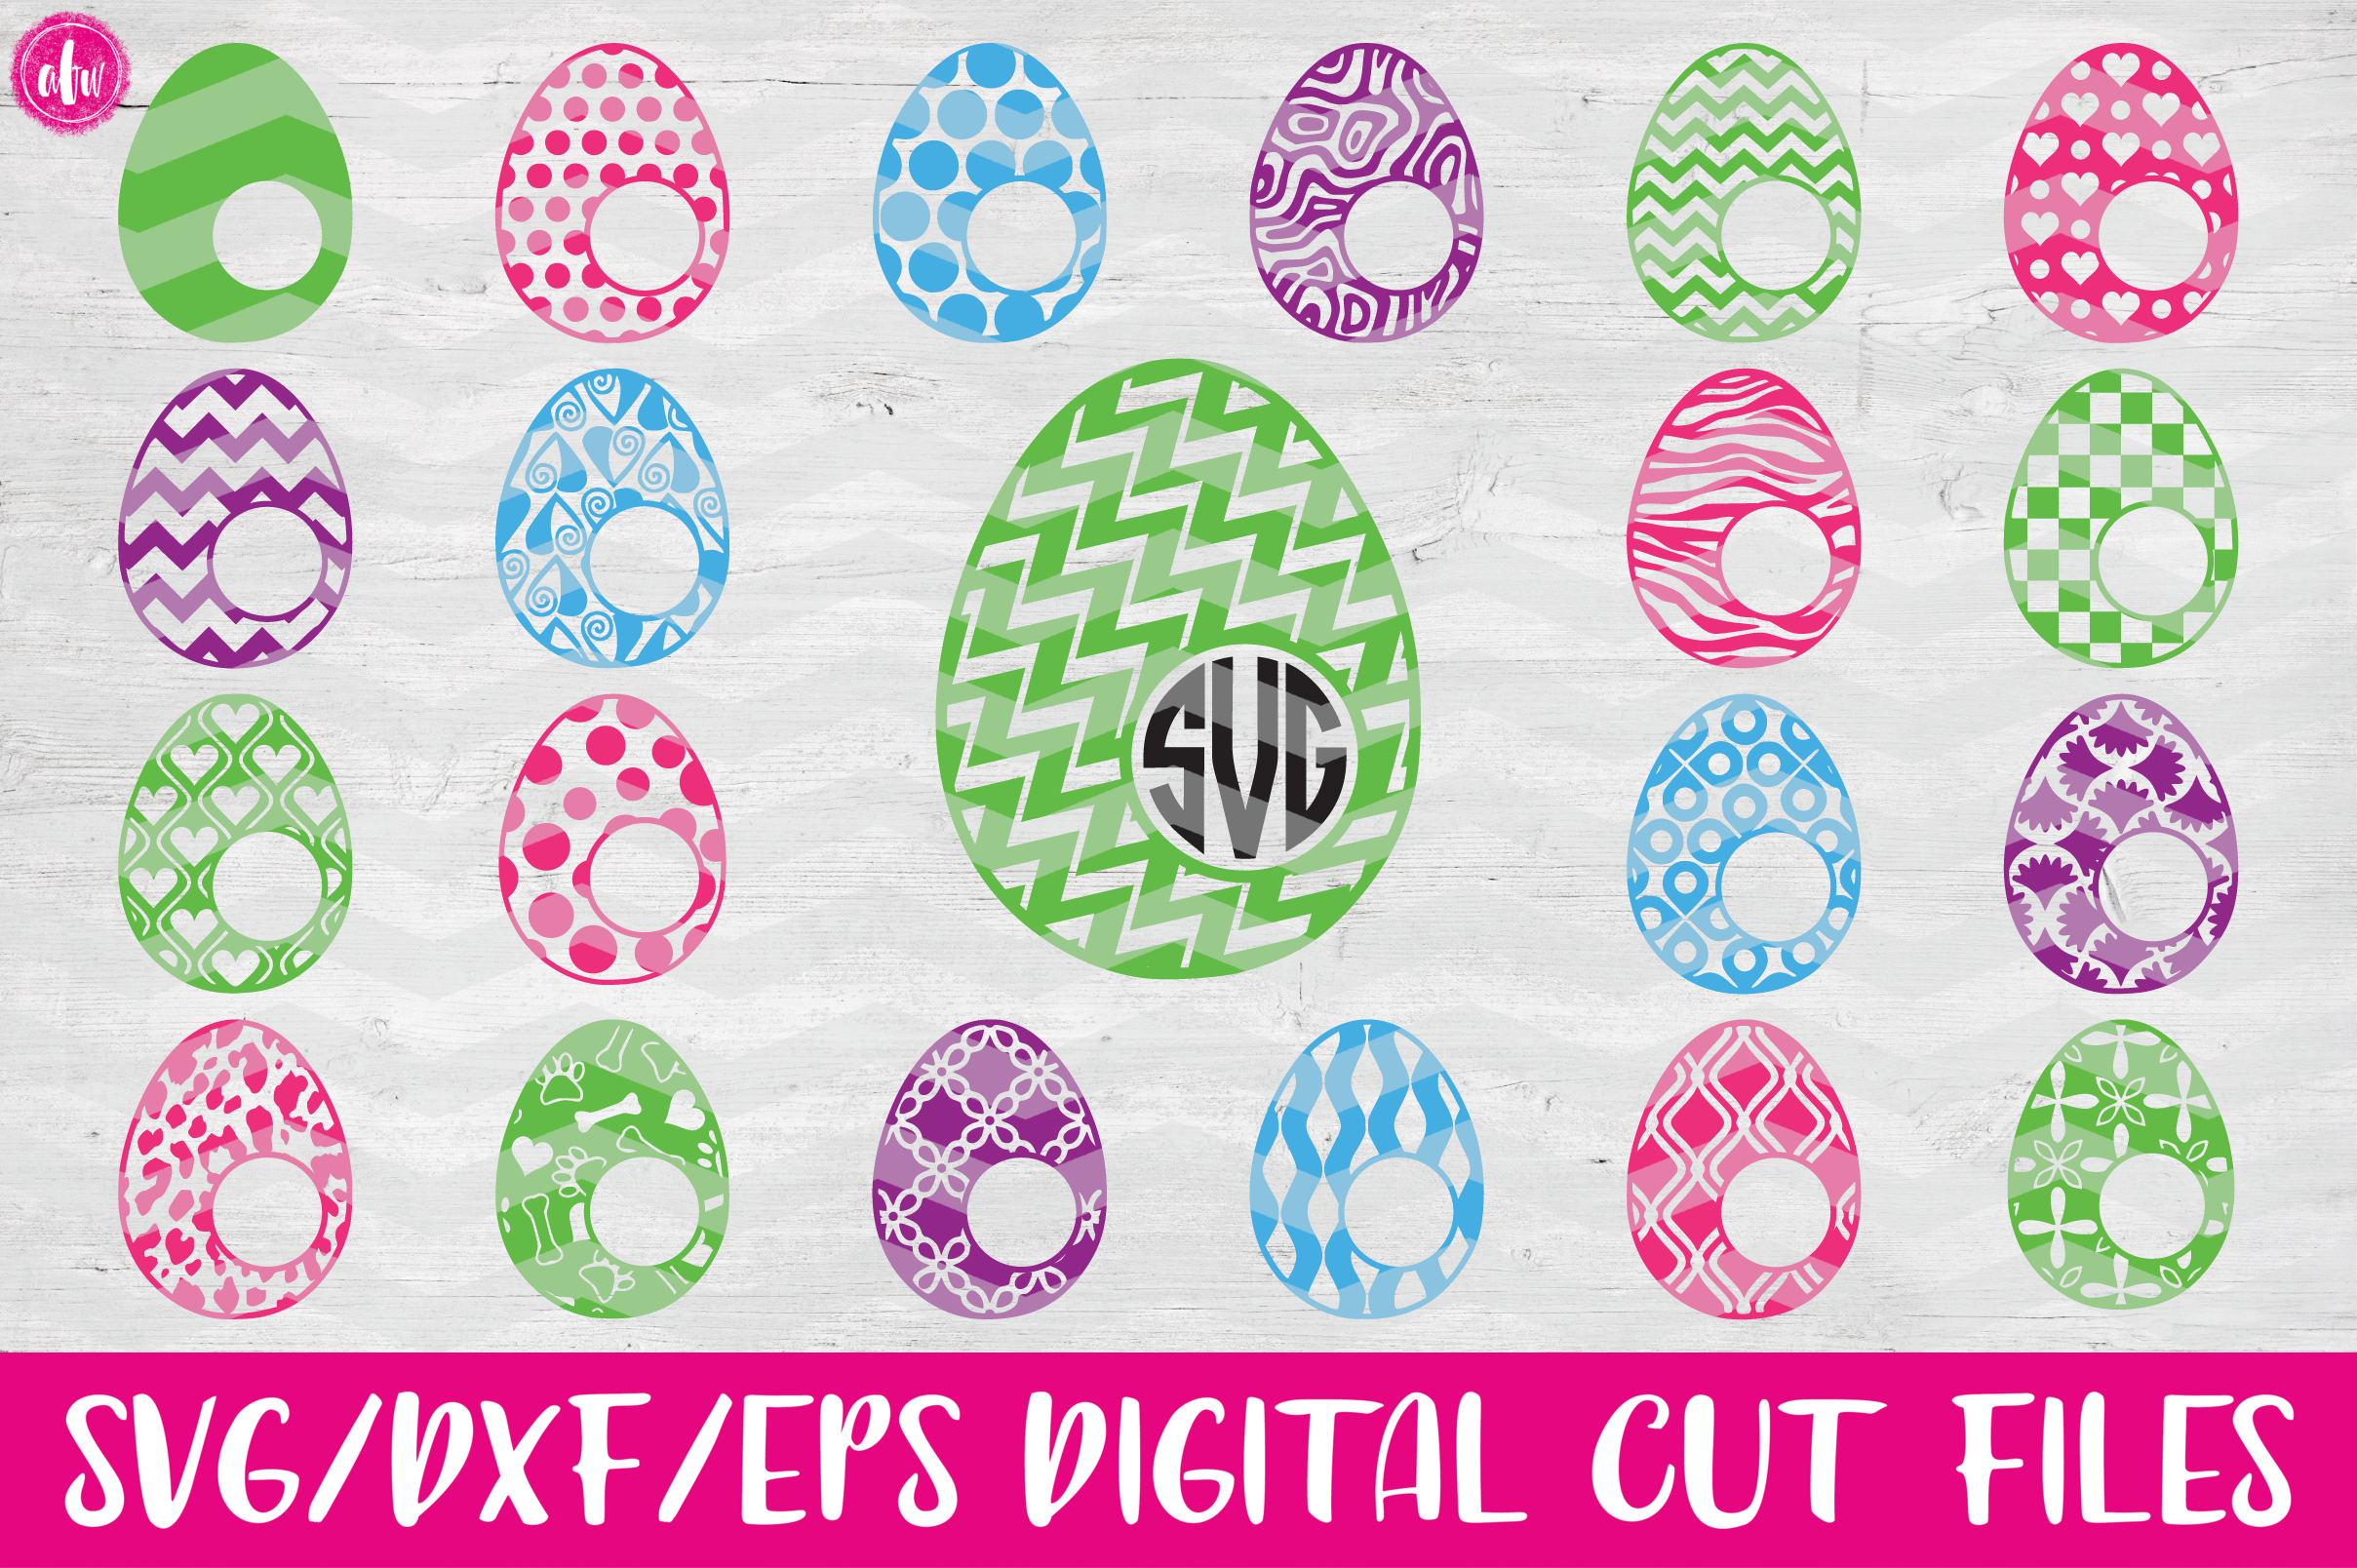 Monogram Pattern Easter Eggs Set of 40 - SVG, DXF, EPS Cut Files example image 1